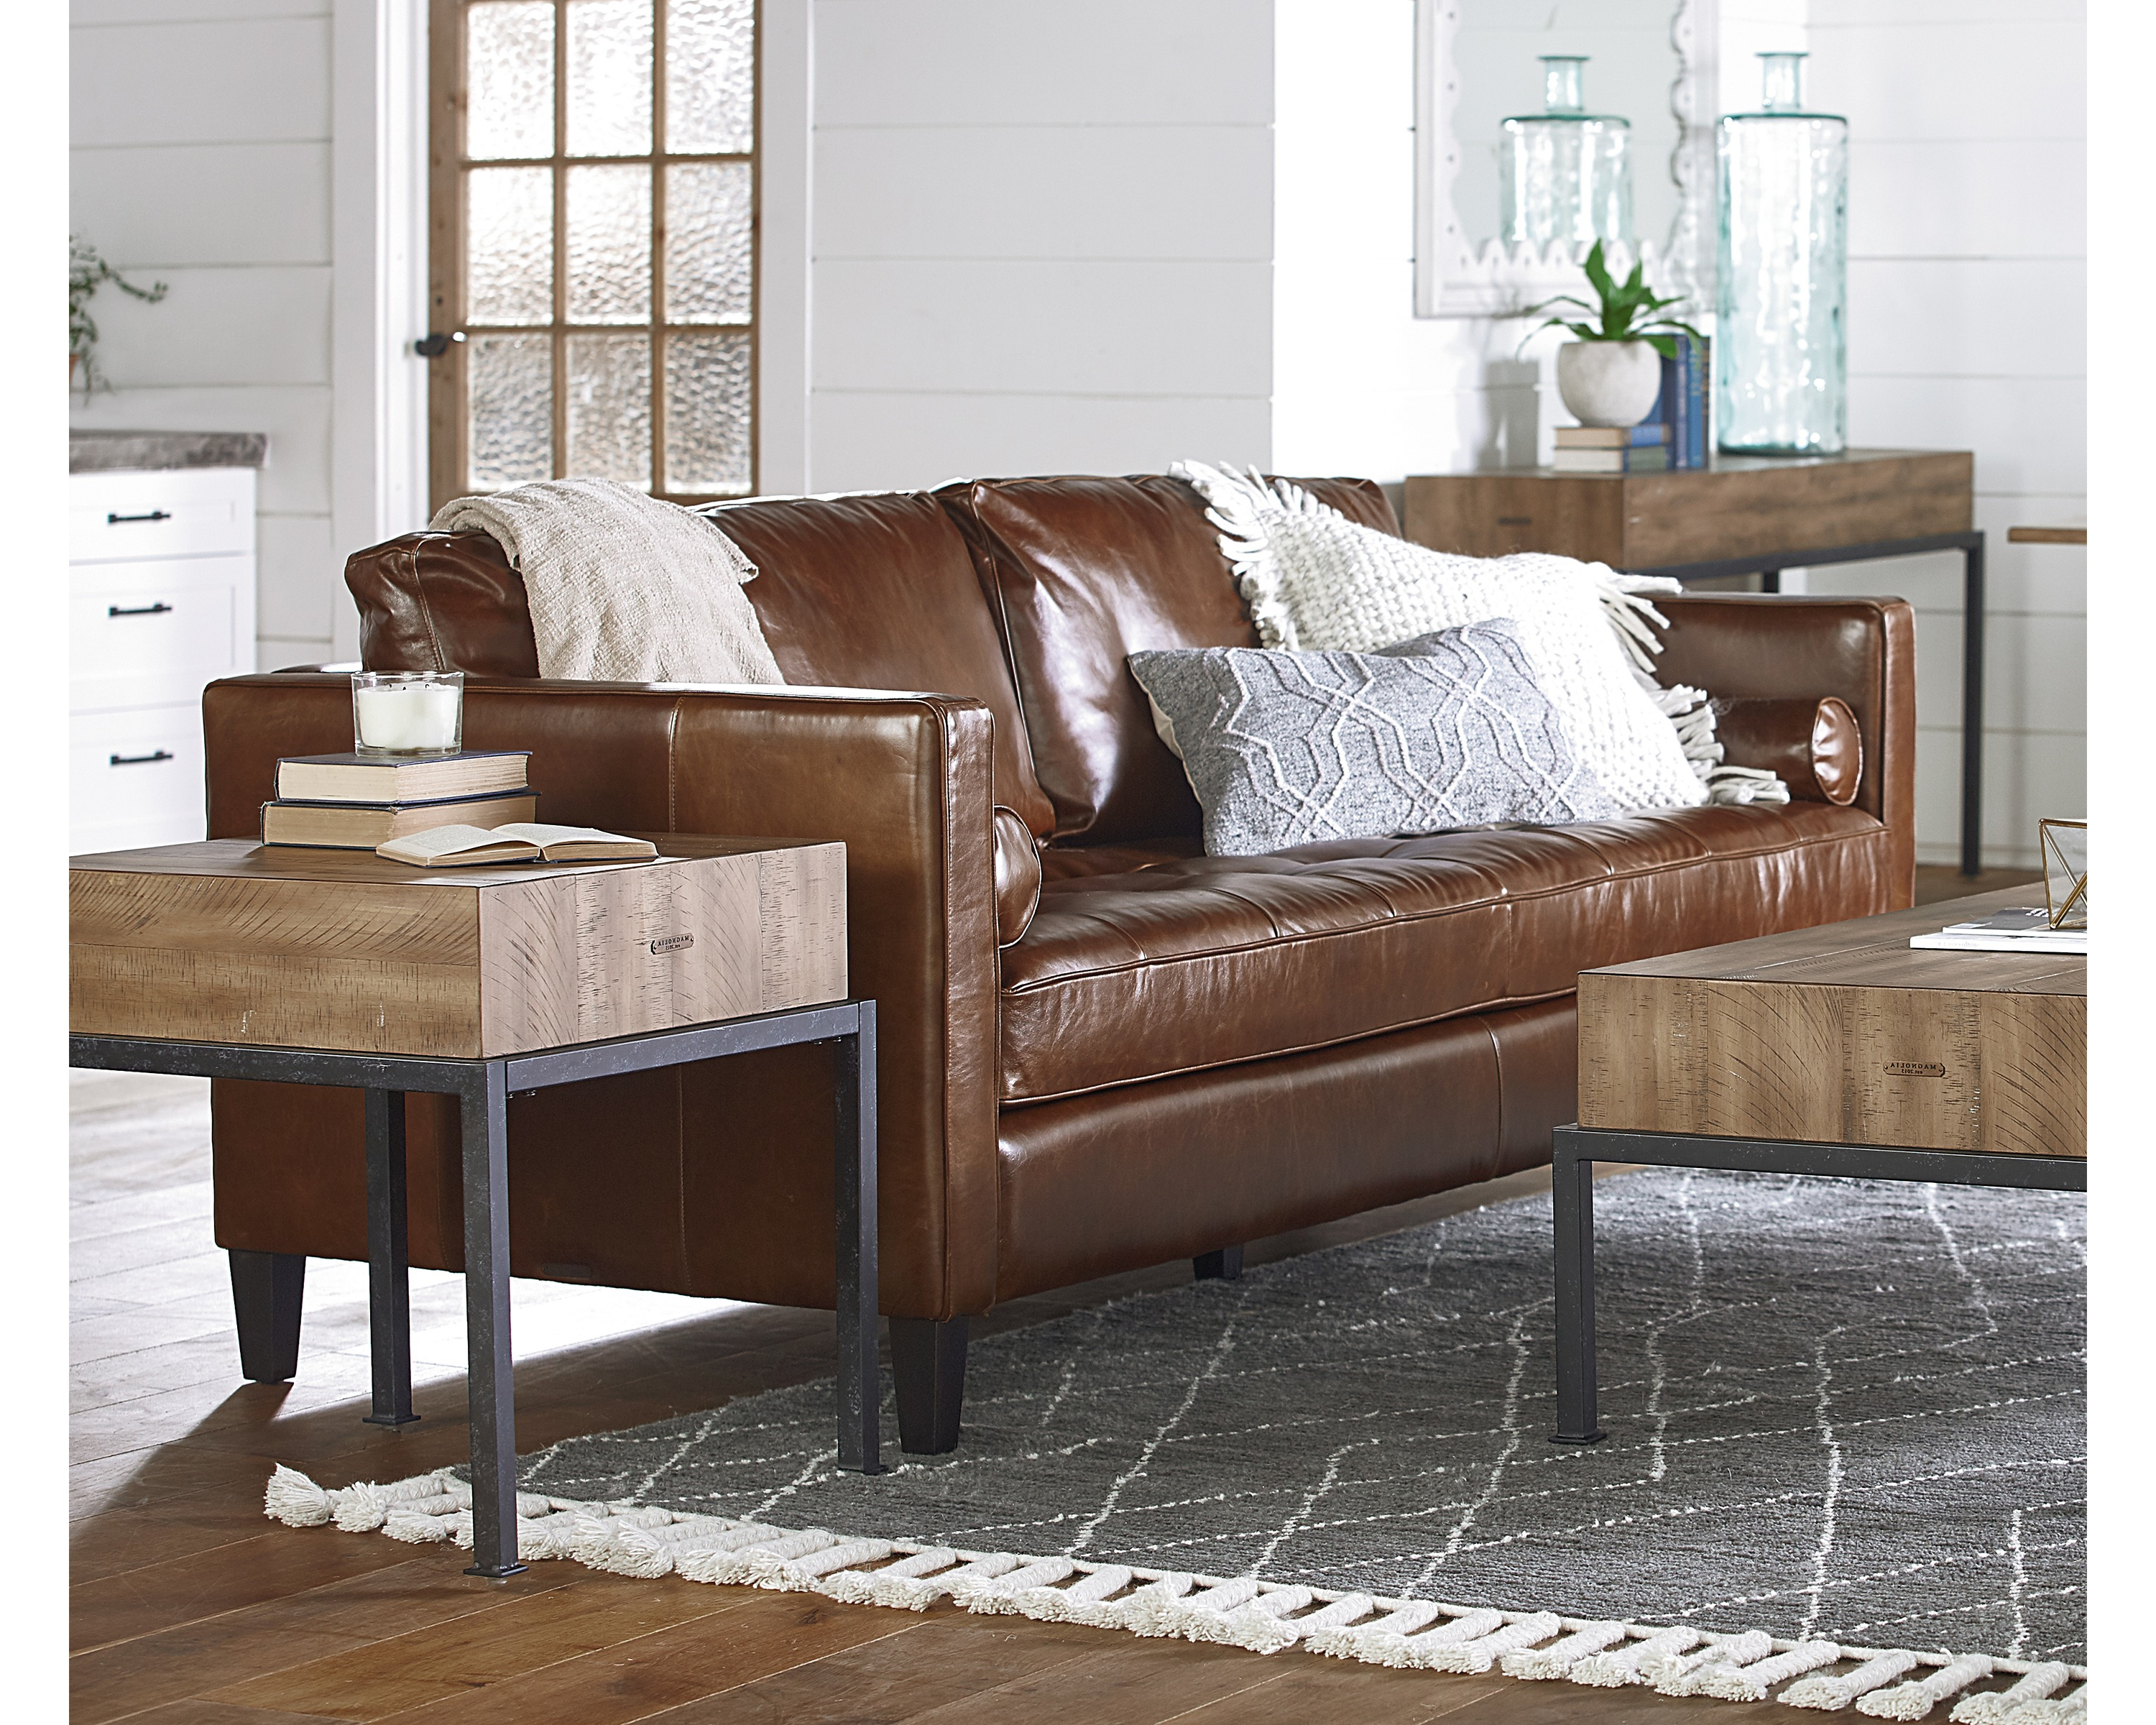 Magnolia Home Dapper Fog Sofa Chairs Intended For Popular Dapper Sofa – Magnolia Home (View 11 of 20)